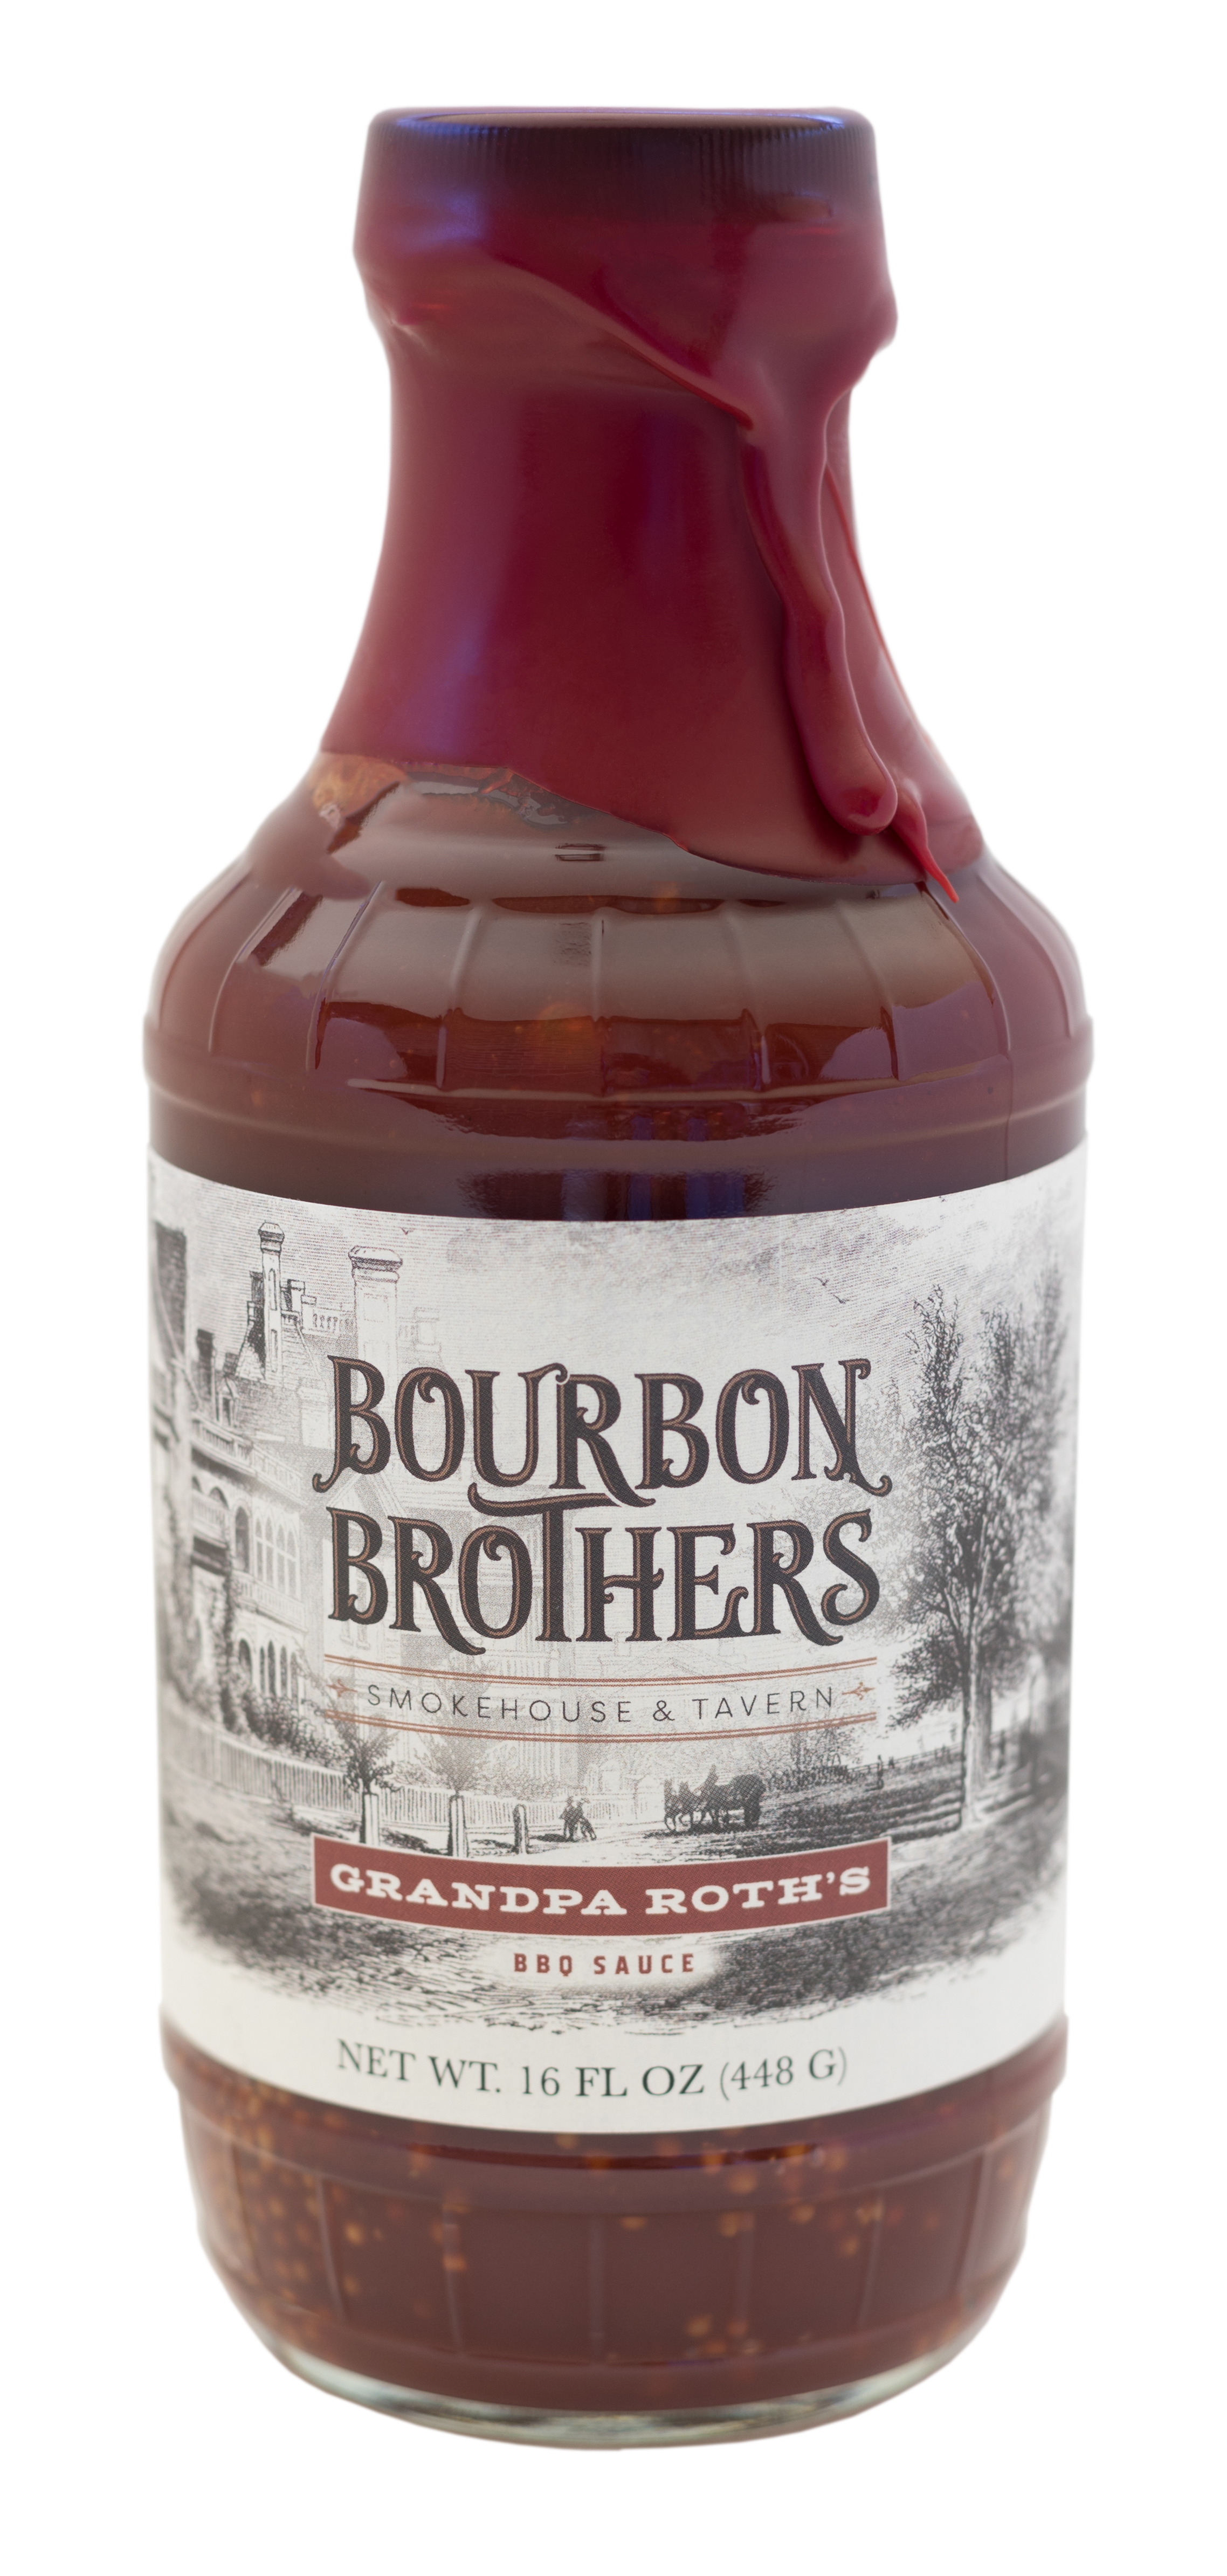 060518_BourbonBrothers_GrandpaRoths_CutOut.png